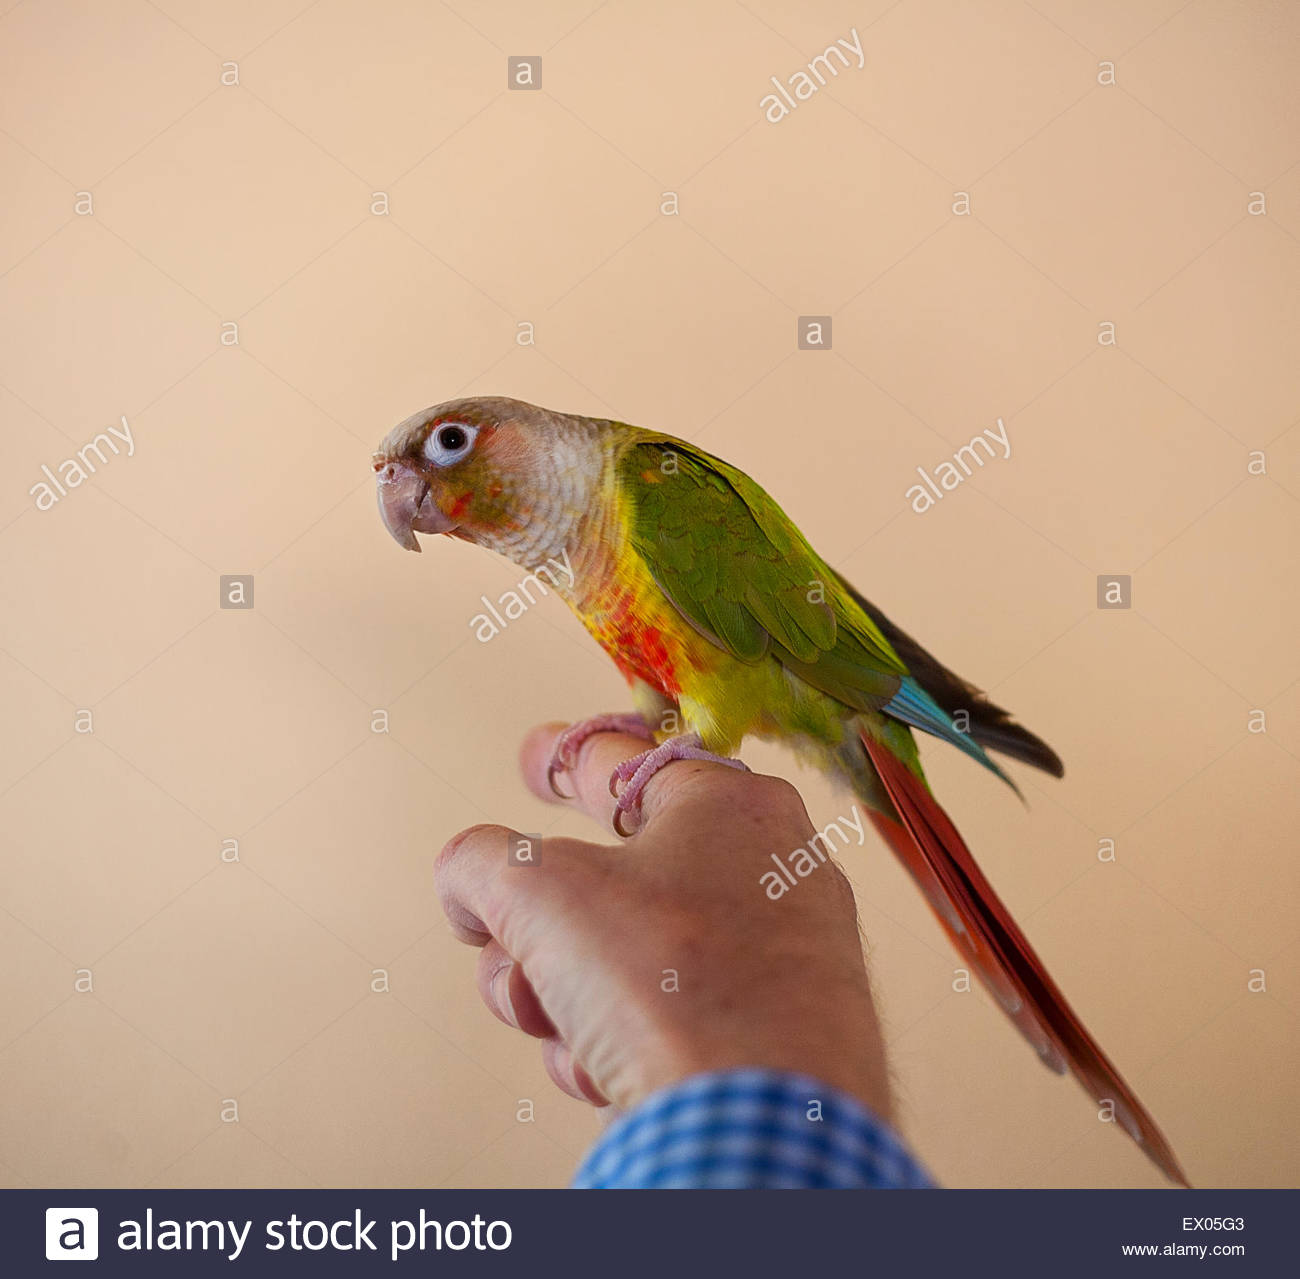 Bird perched on man's finger - Stock Image